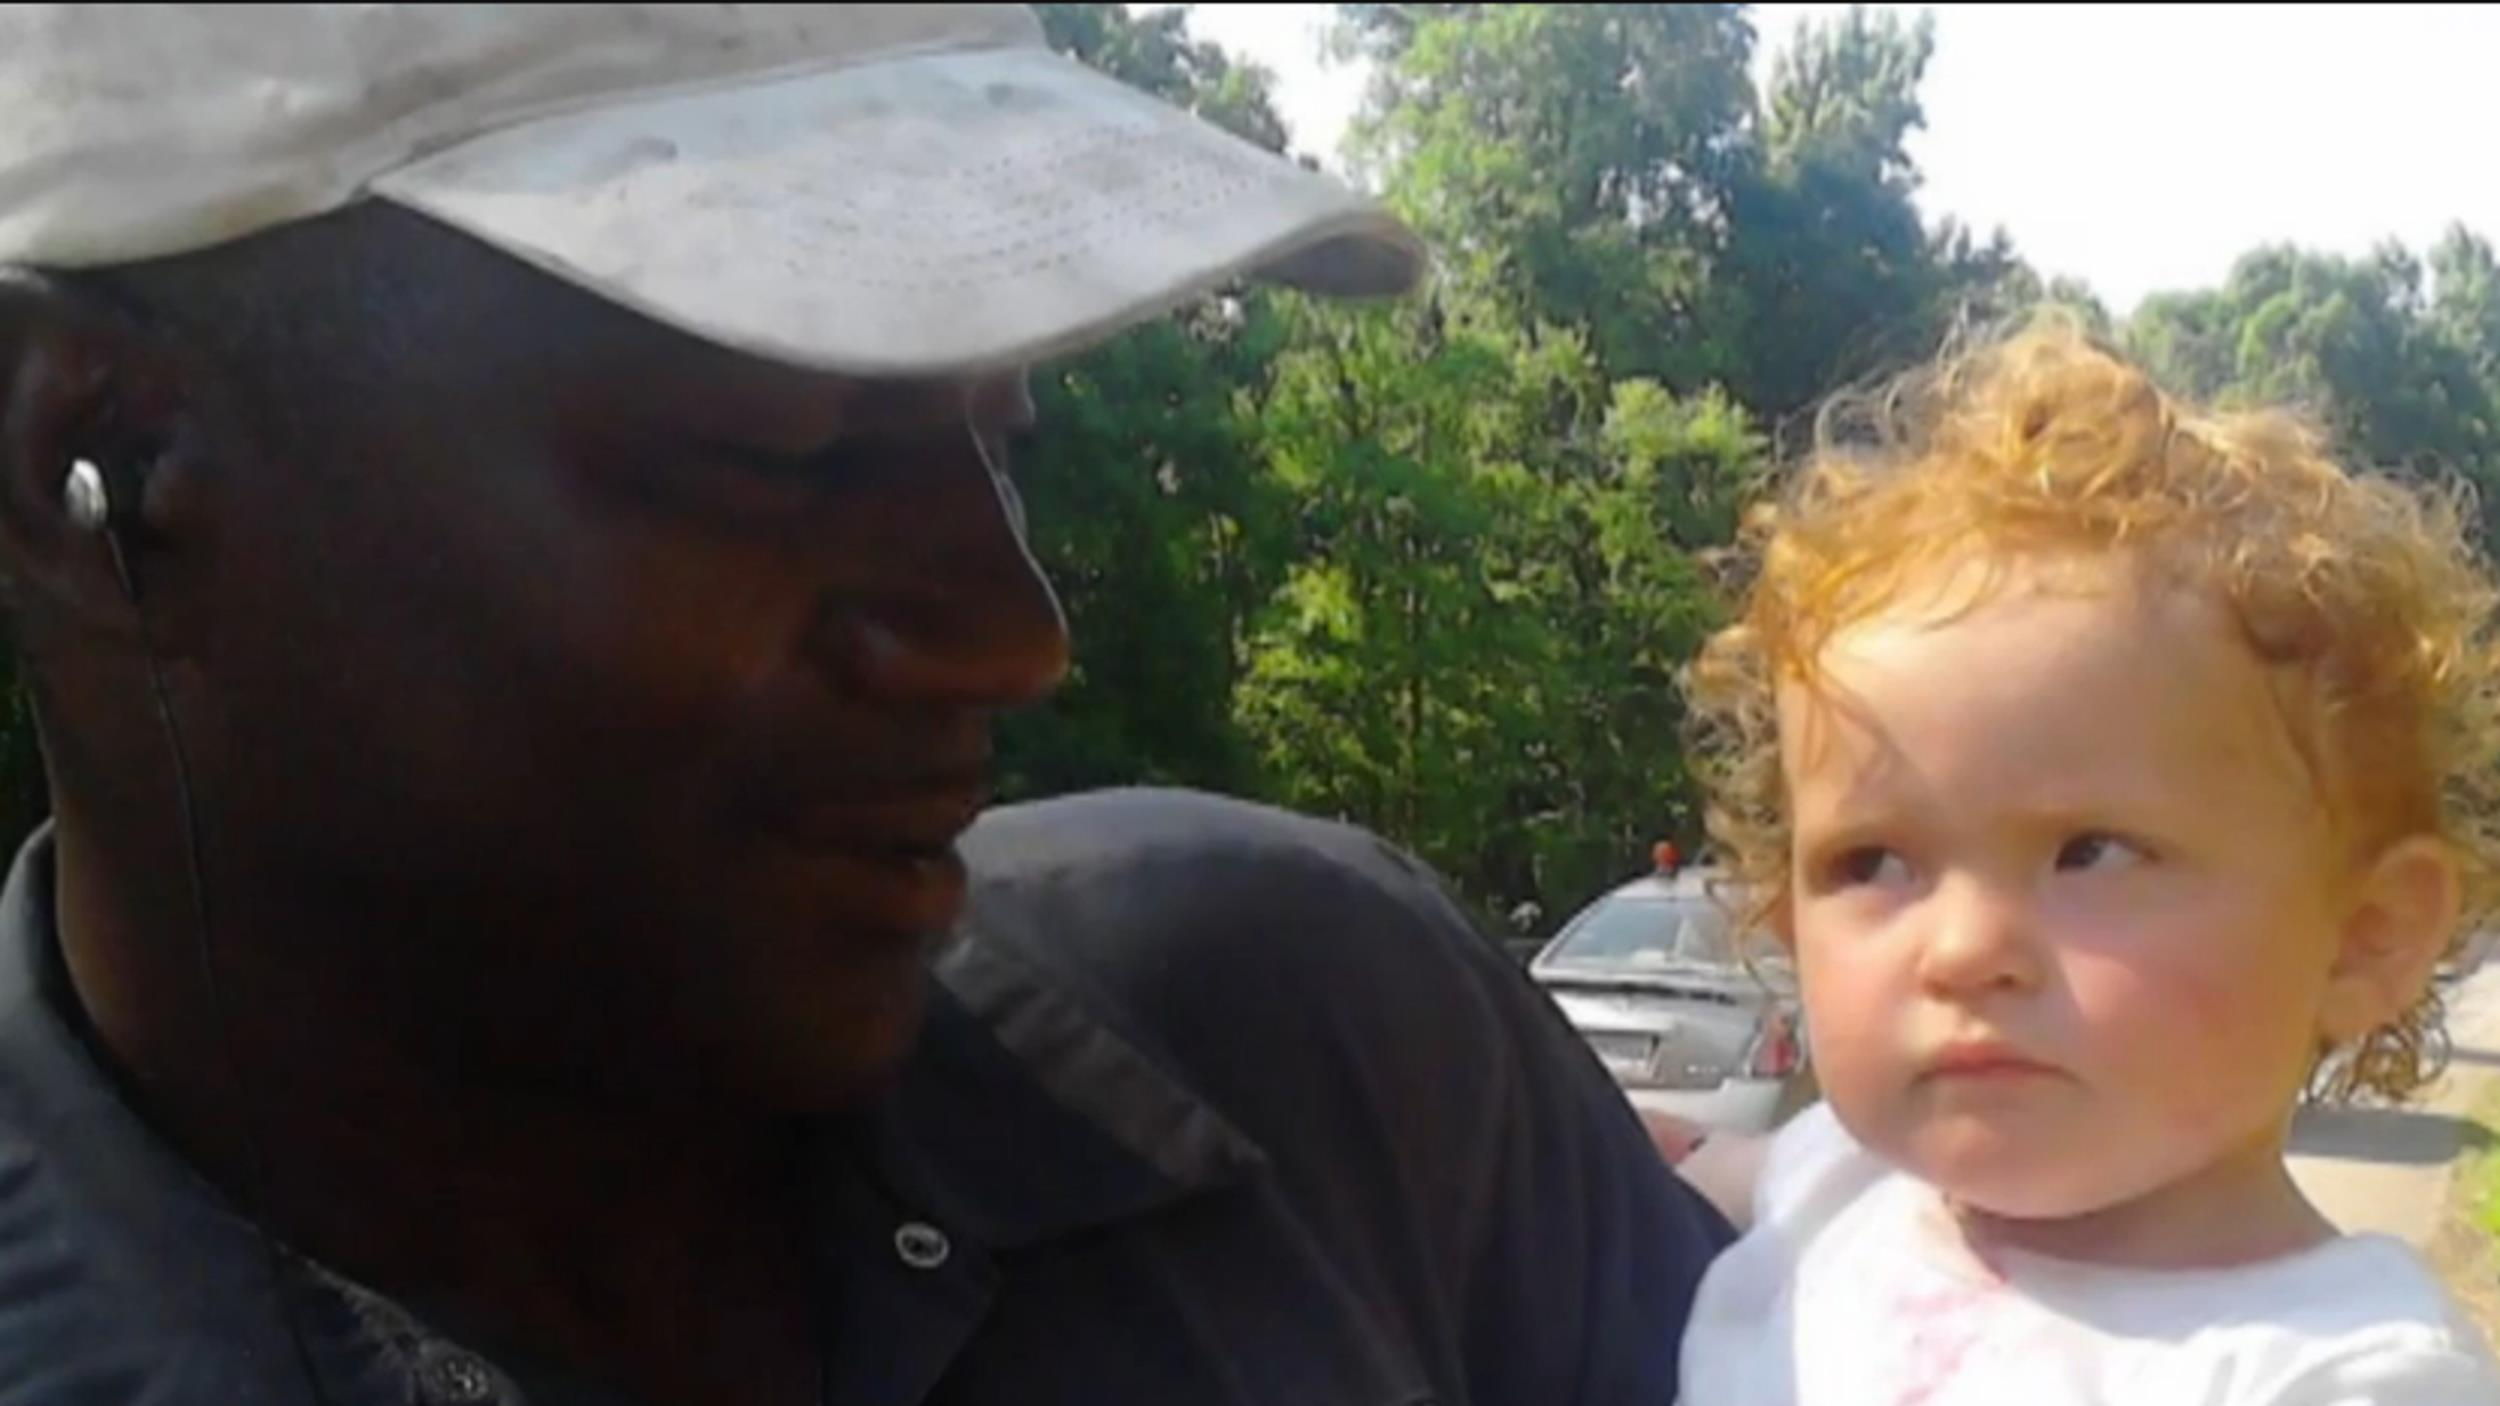 Image: Bryant Collins saved the life of this 15-month-old baby, when he found her on the side of the highway in Georgia.